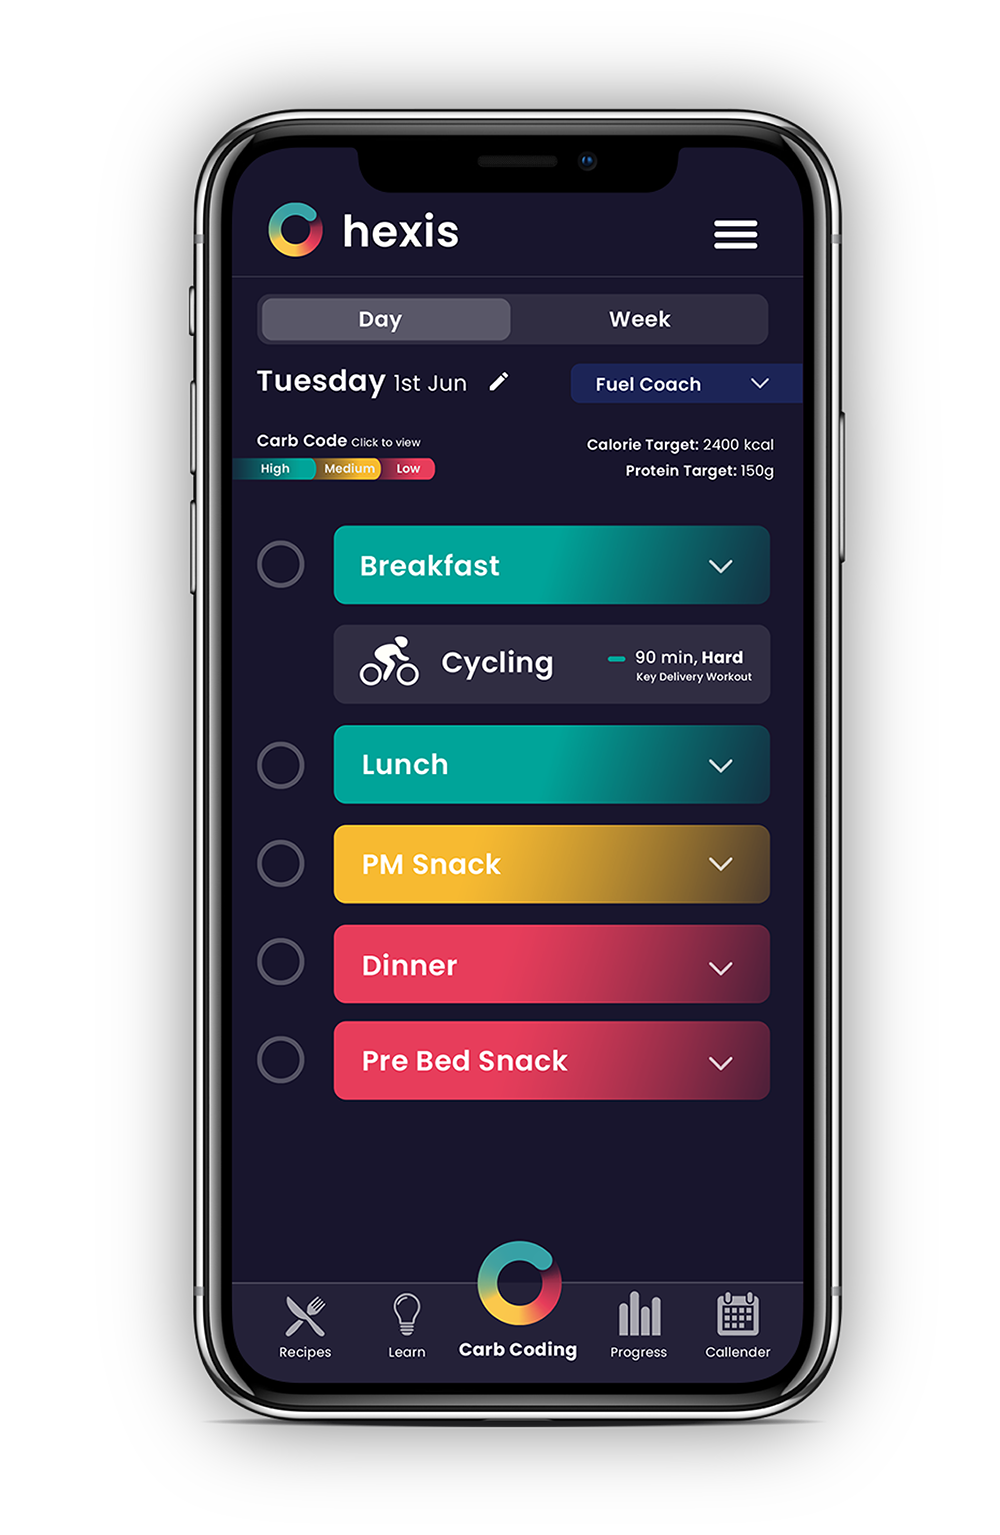 Hexis nutrition app with Carb Coding for athletic performance